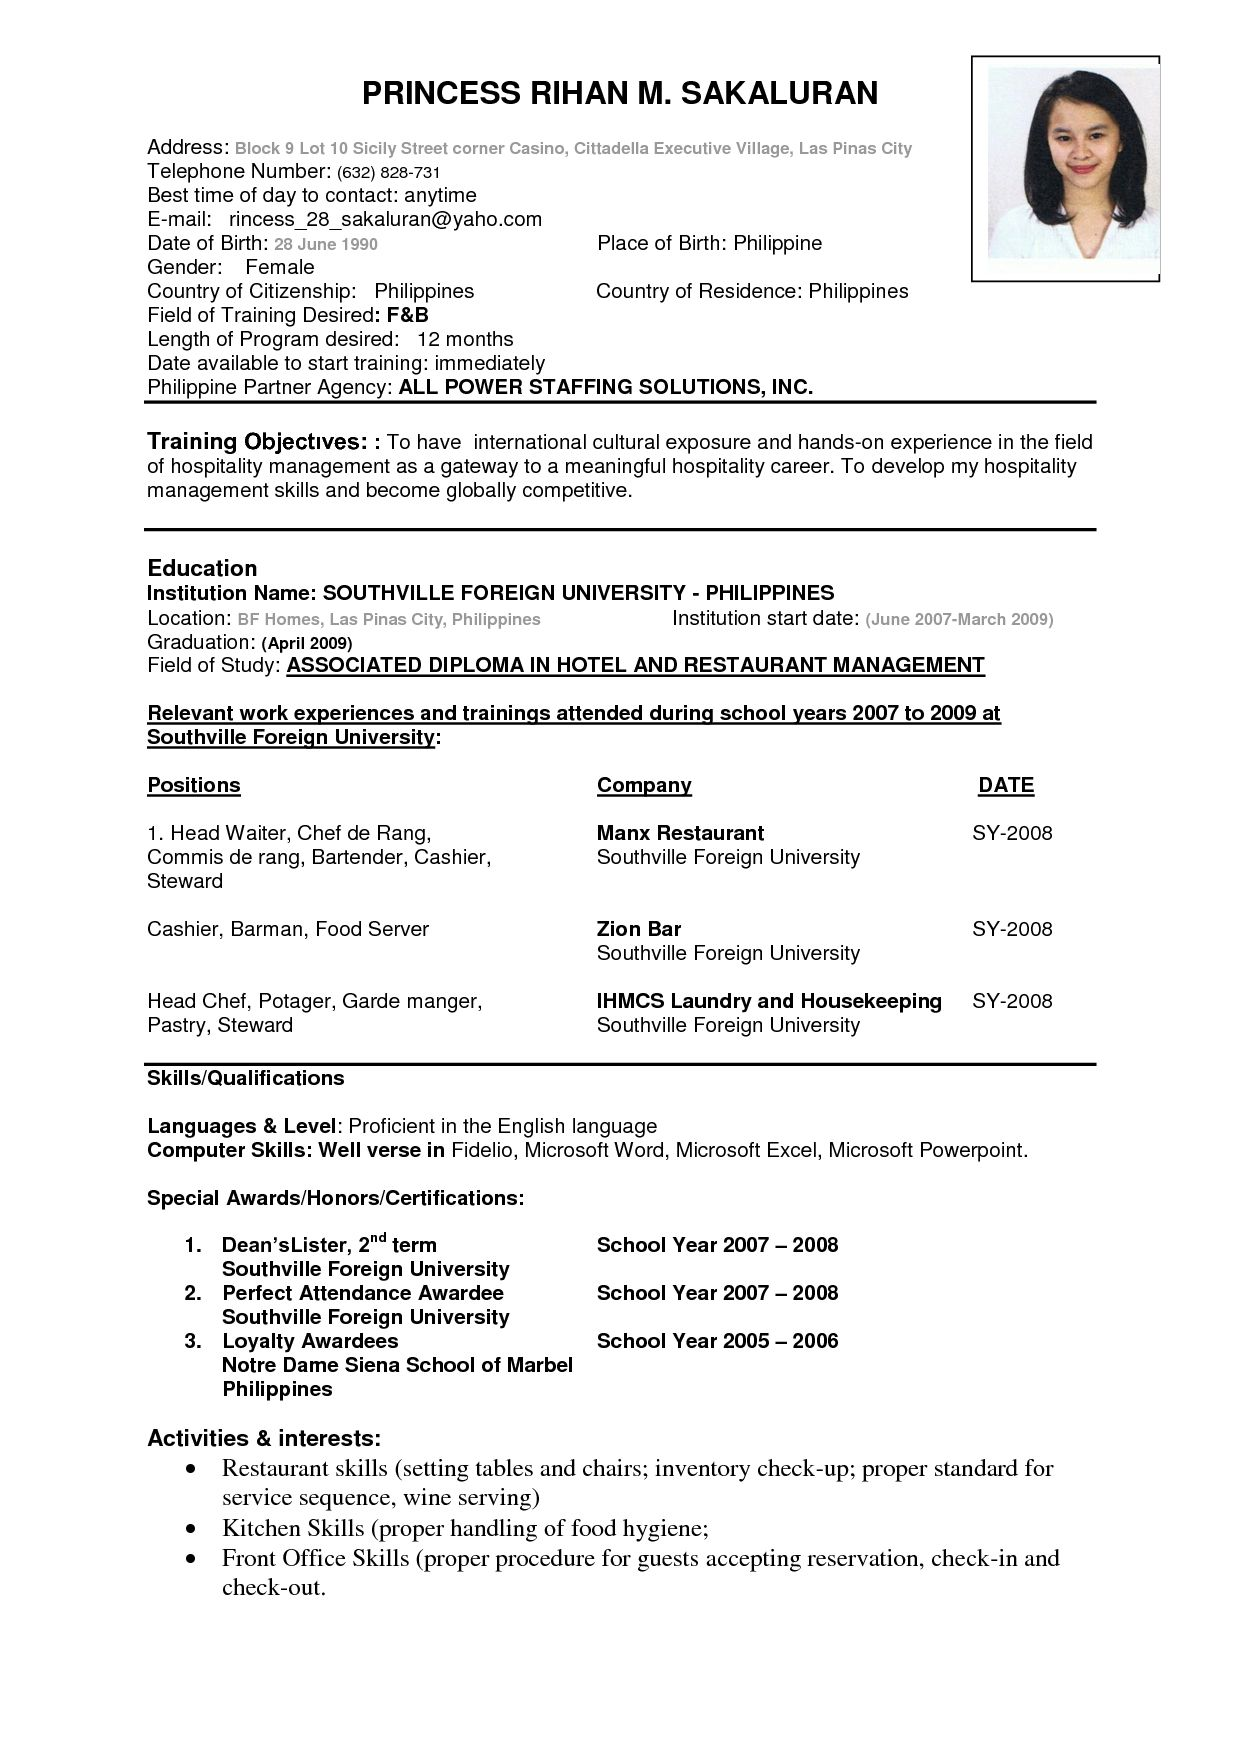 Resume Format In Word For Hotel Management Fresher - BEST ...